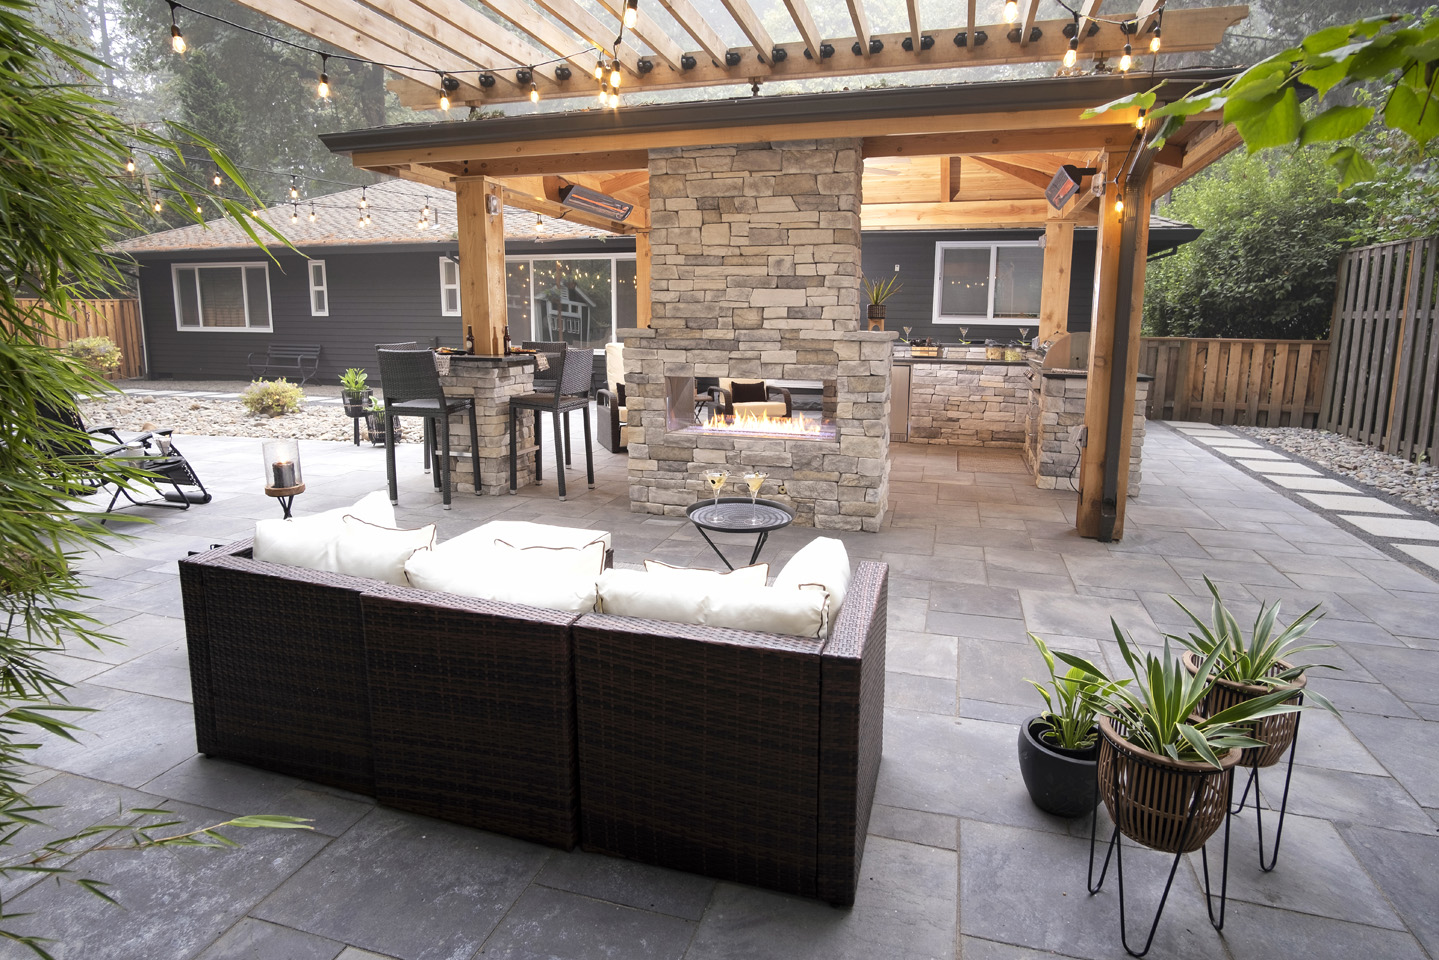 Pergola Covered Outdoor Living Space